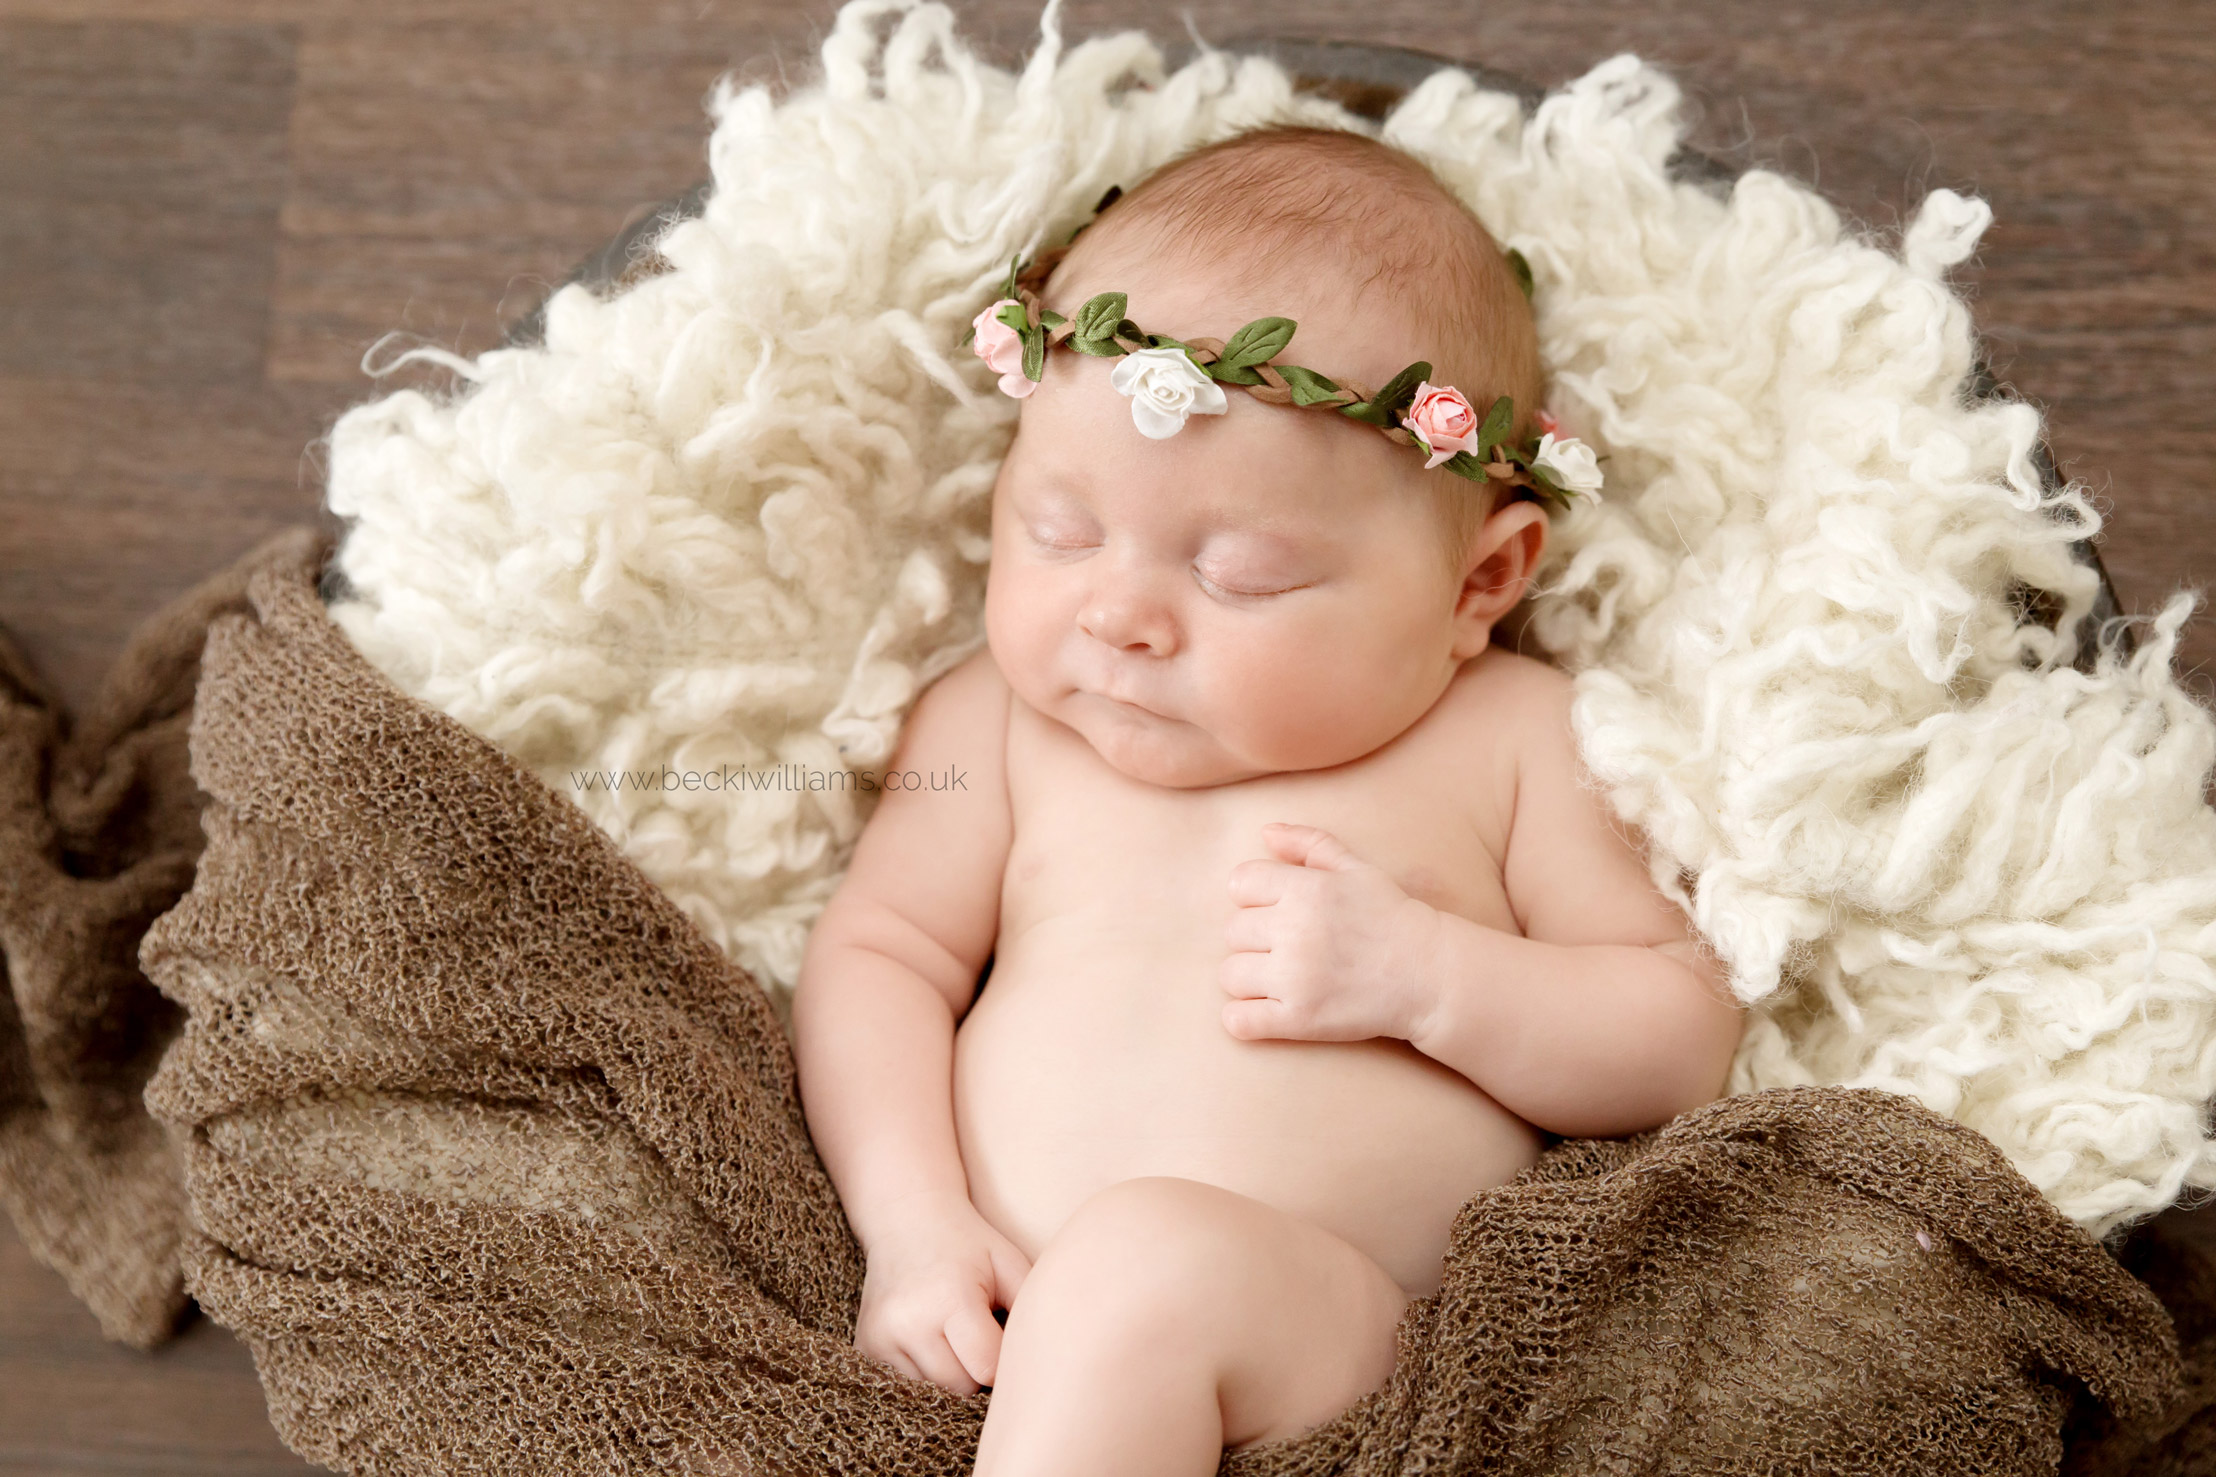 Newborn girl in wooden bowl with a flower headband